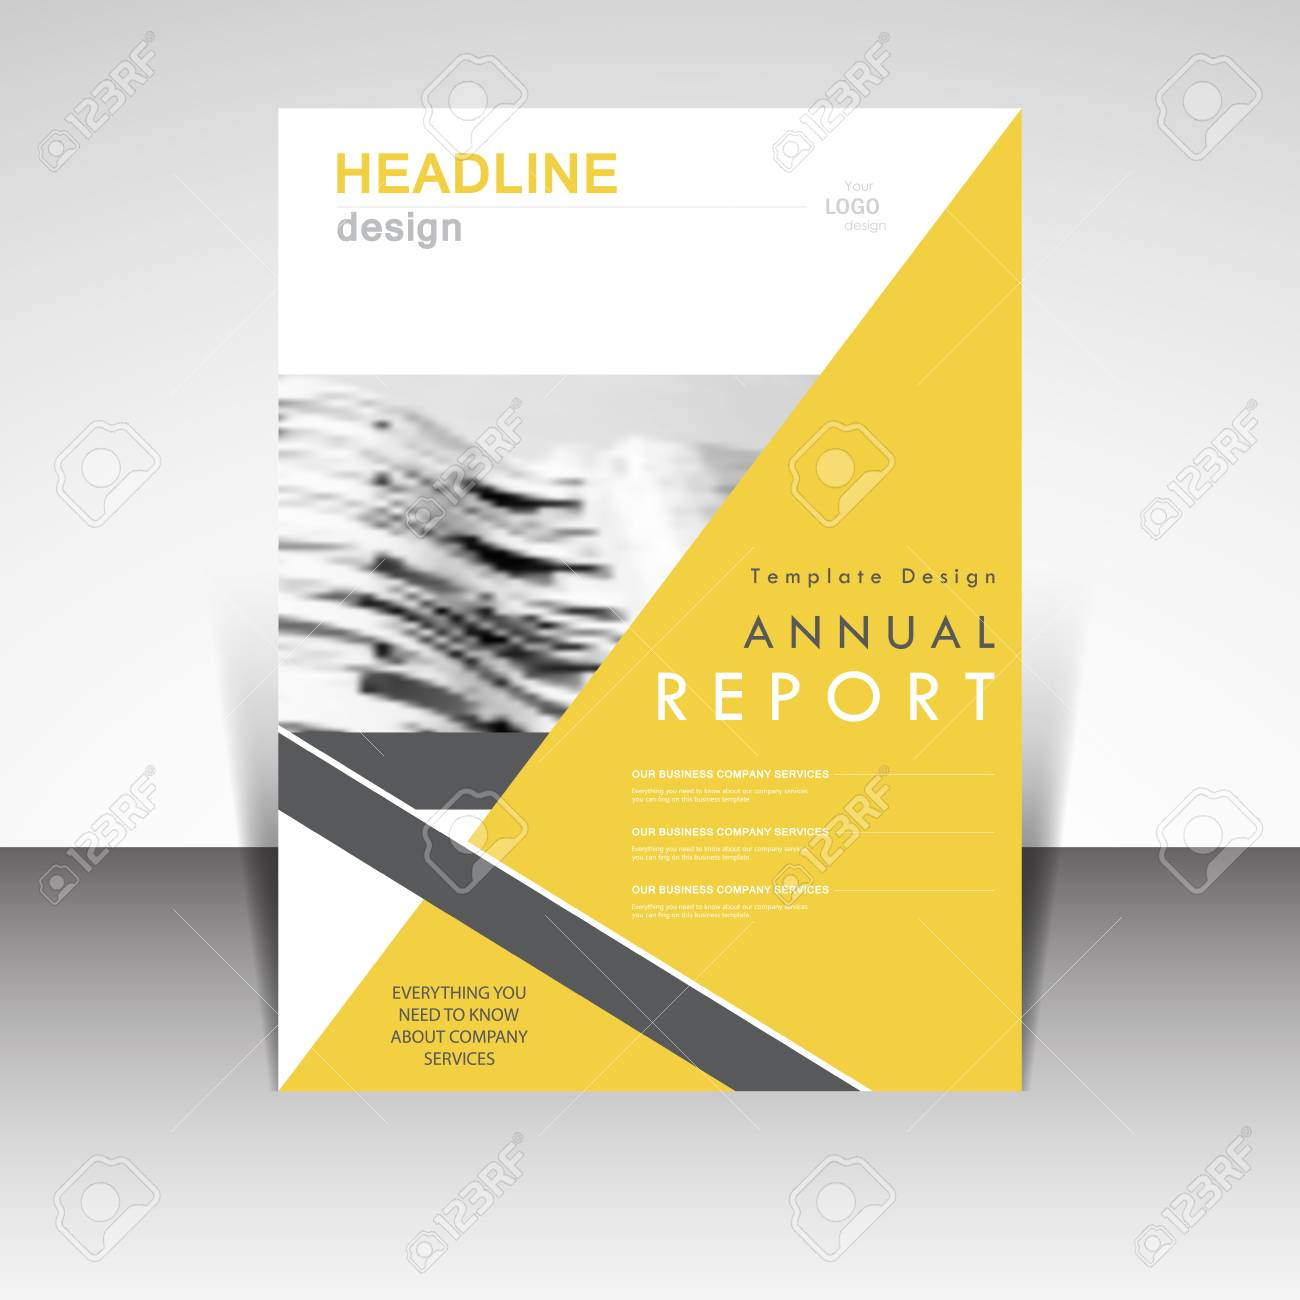 business template annual report brochure design vector illustration